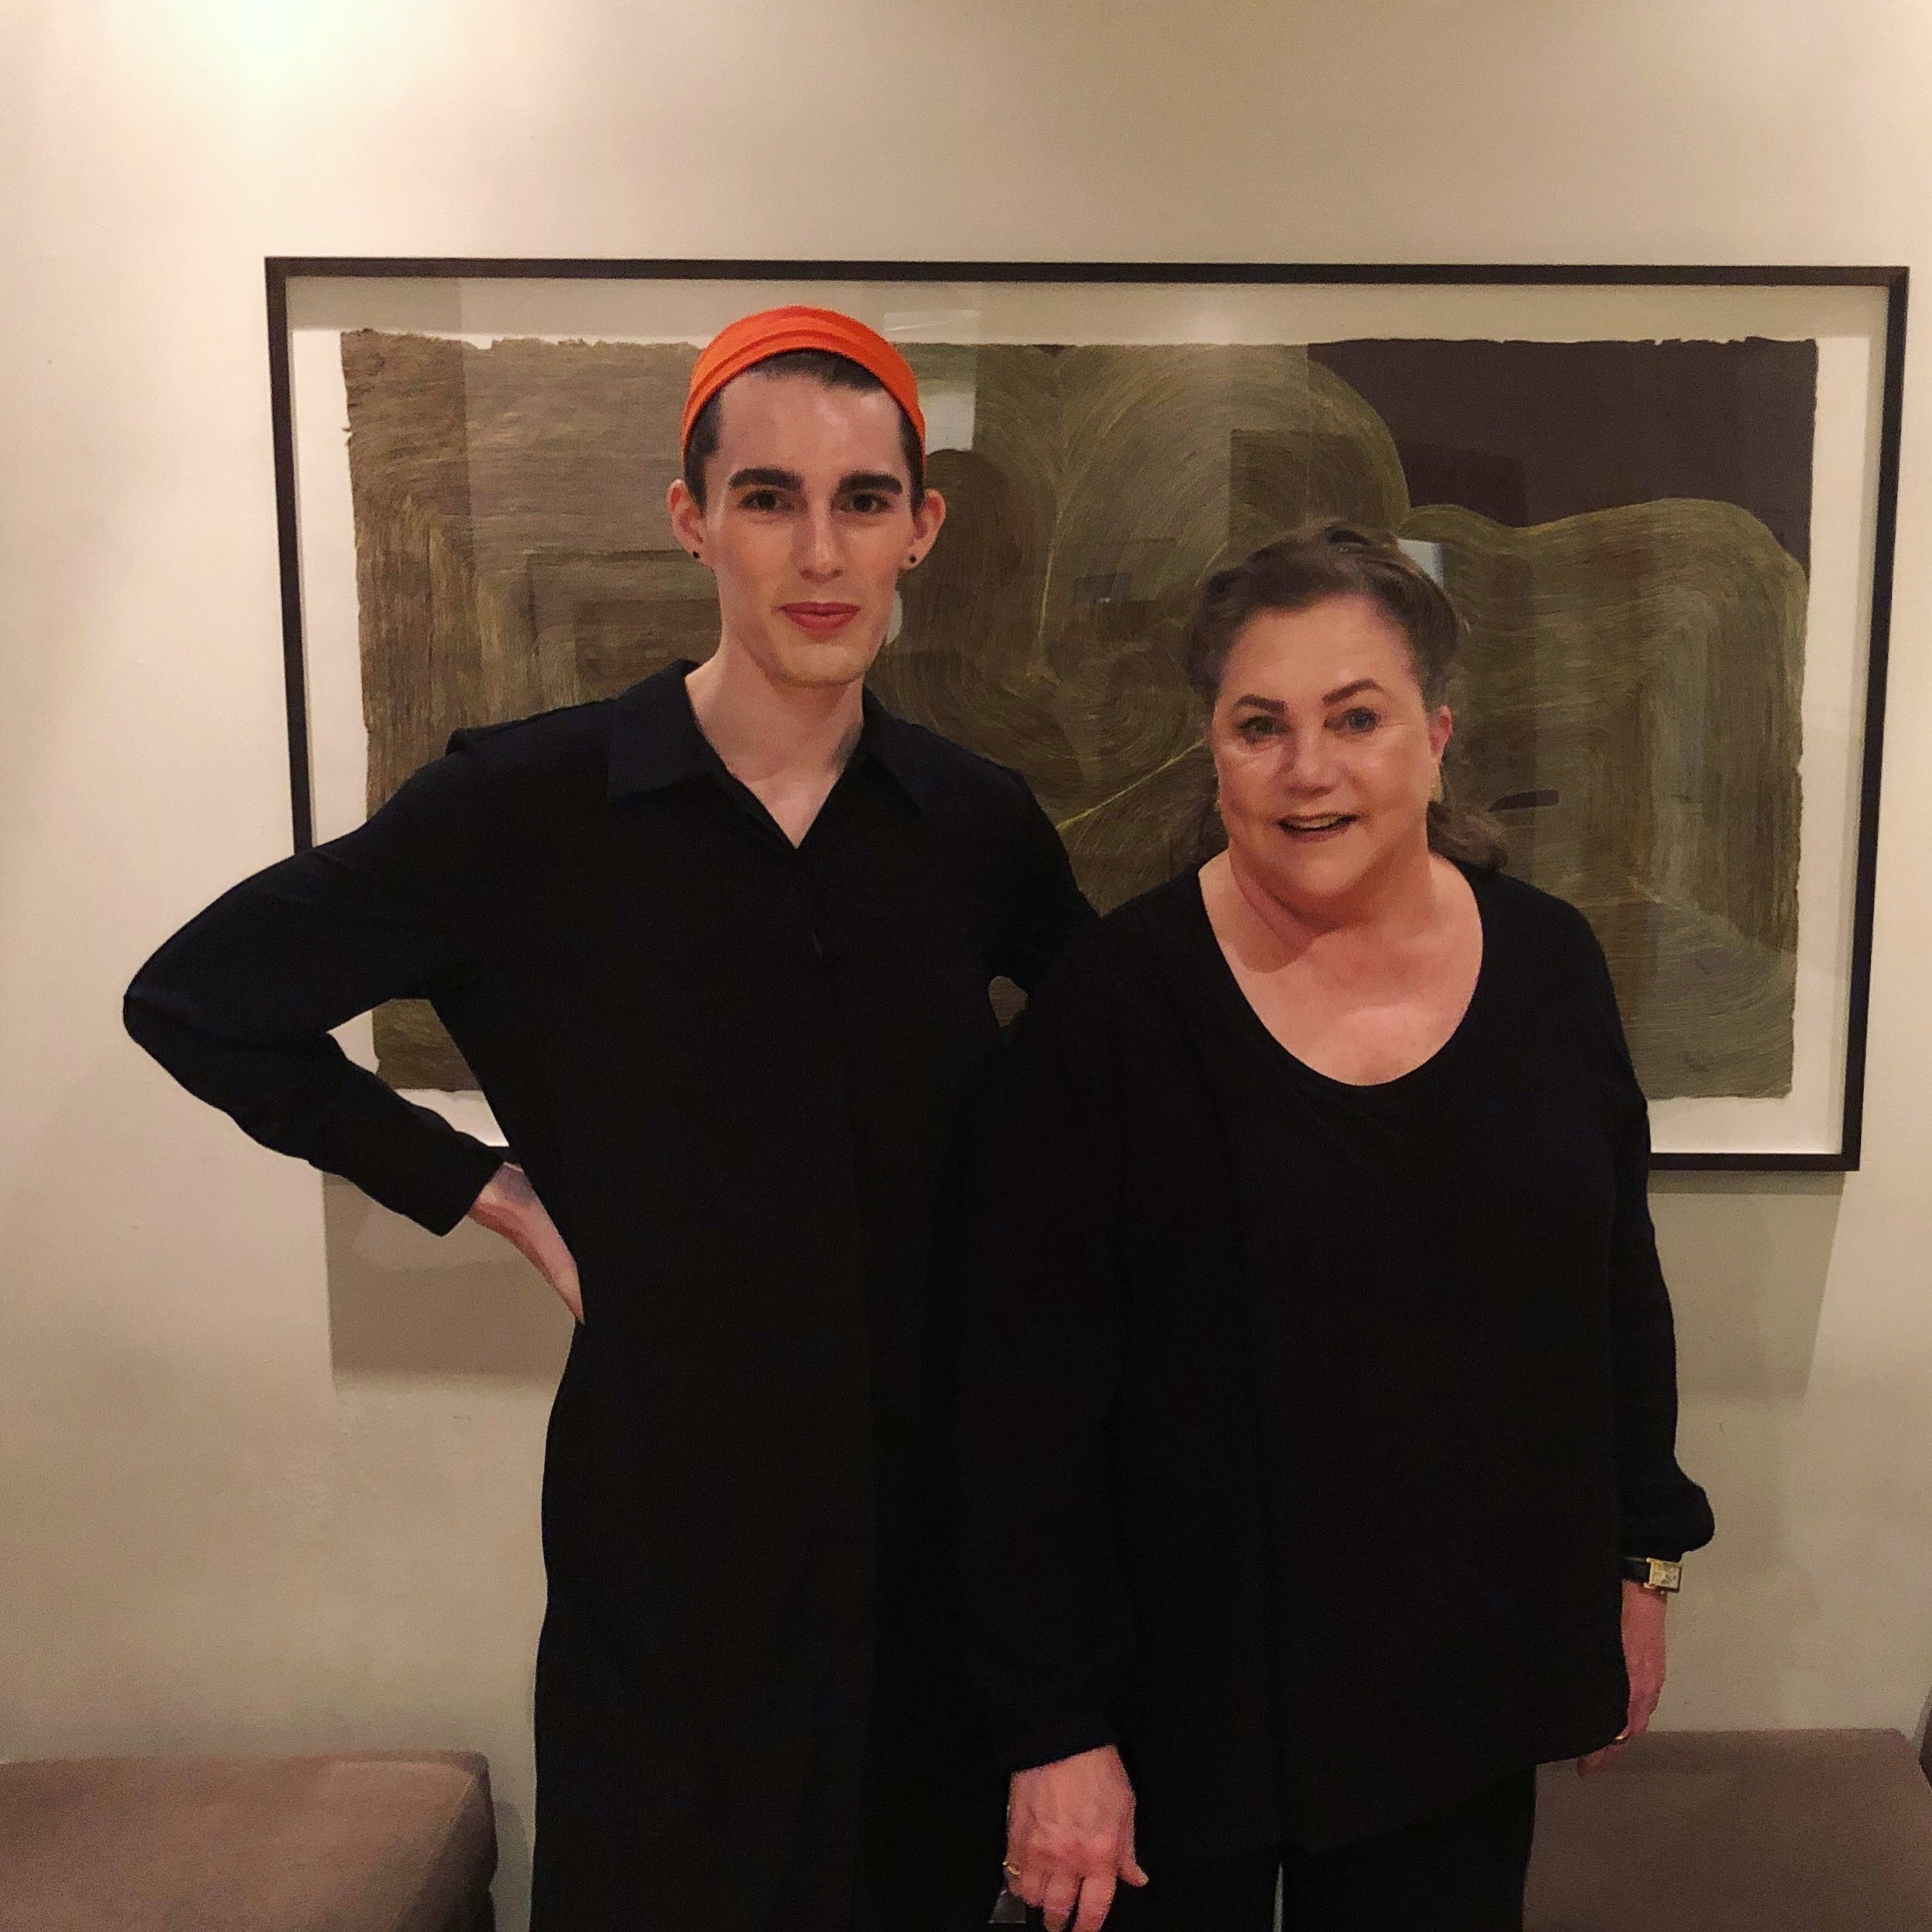 Violette and Kathleen Turner after the interview, in matching New York outfits at our downtown studio lobby.